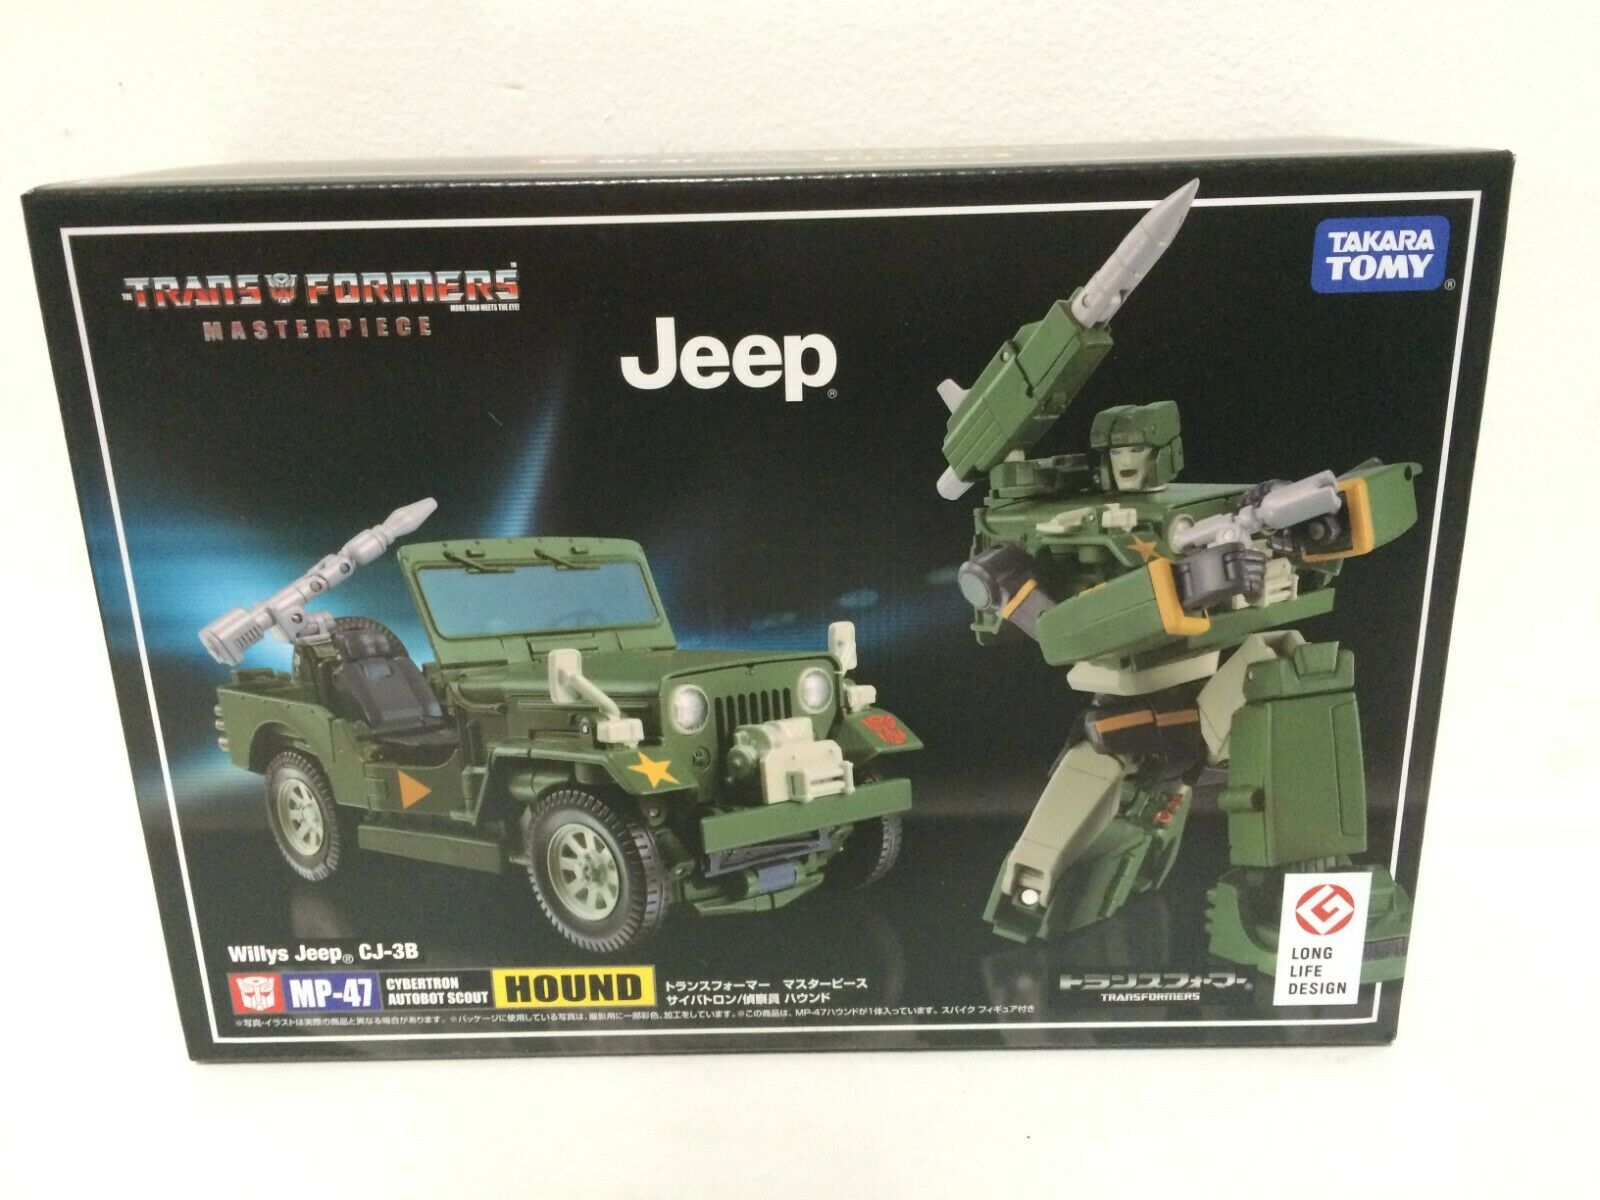 IN HAND Transformers Masterpiece MP-47 Hound Jeep J59 Takara Authentic US SELLER